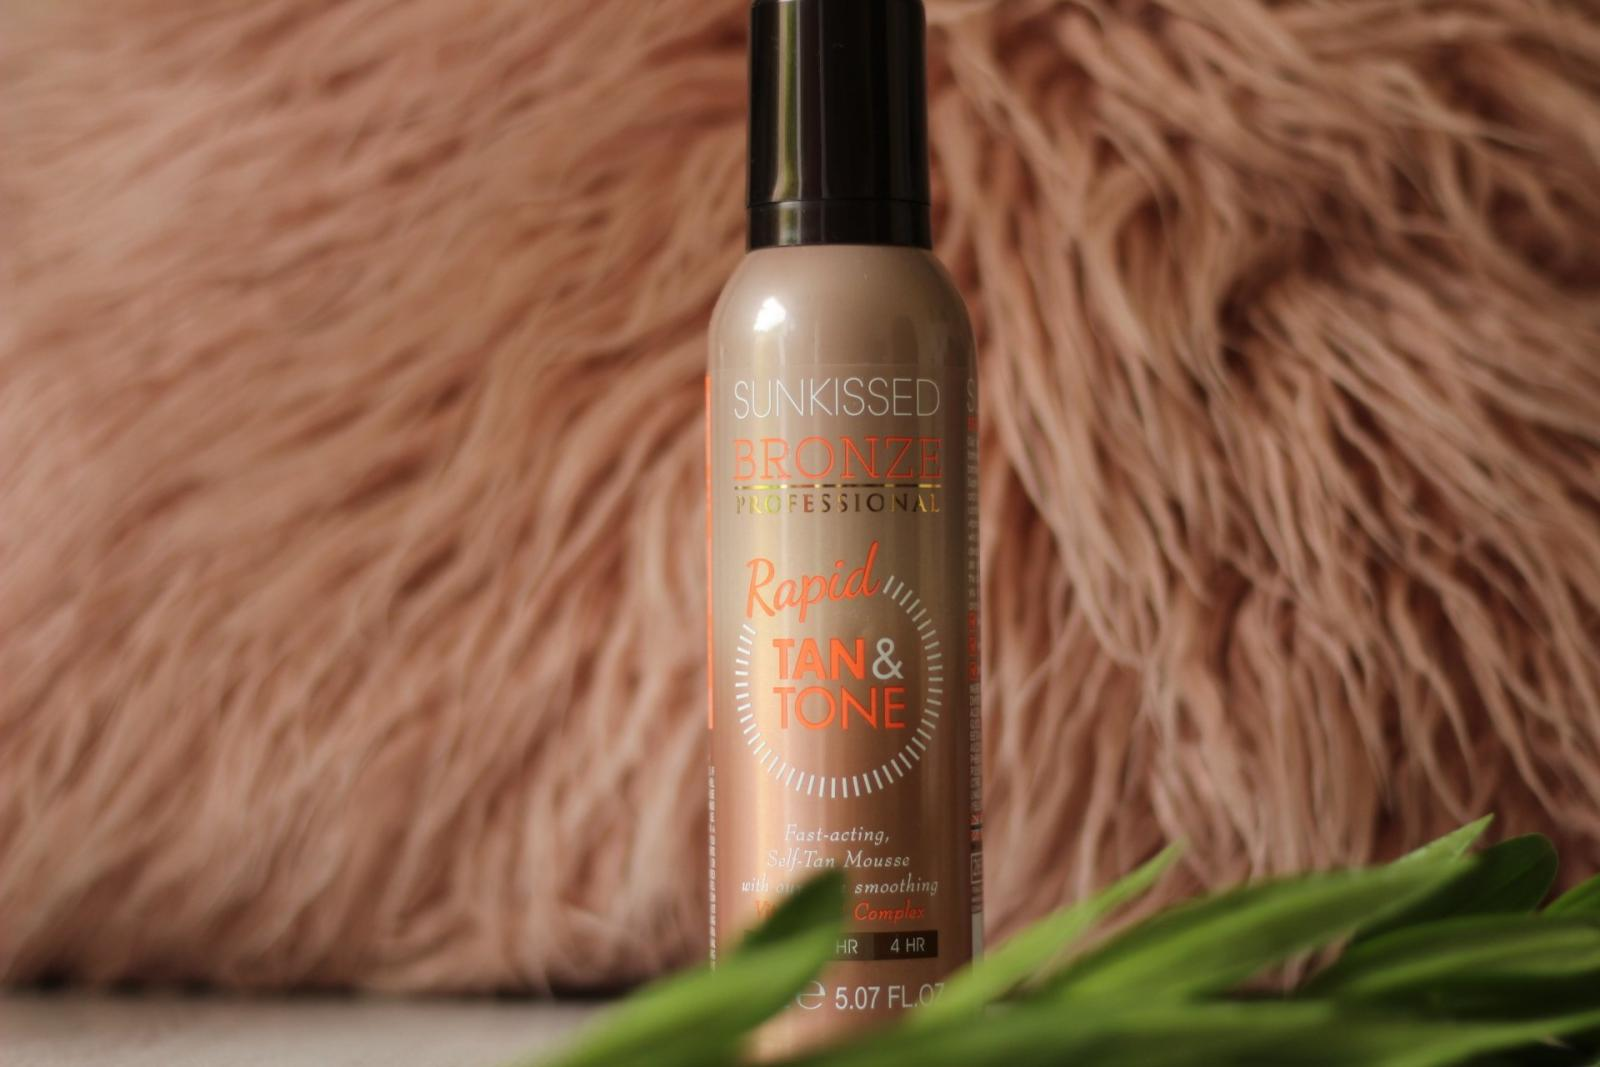 No fuss tanning | Sunkissed Bronze Rapid Tan & Tone